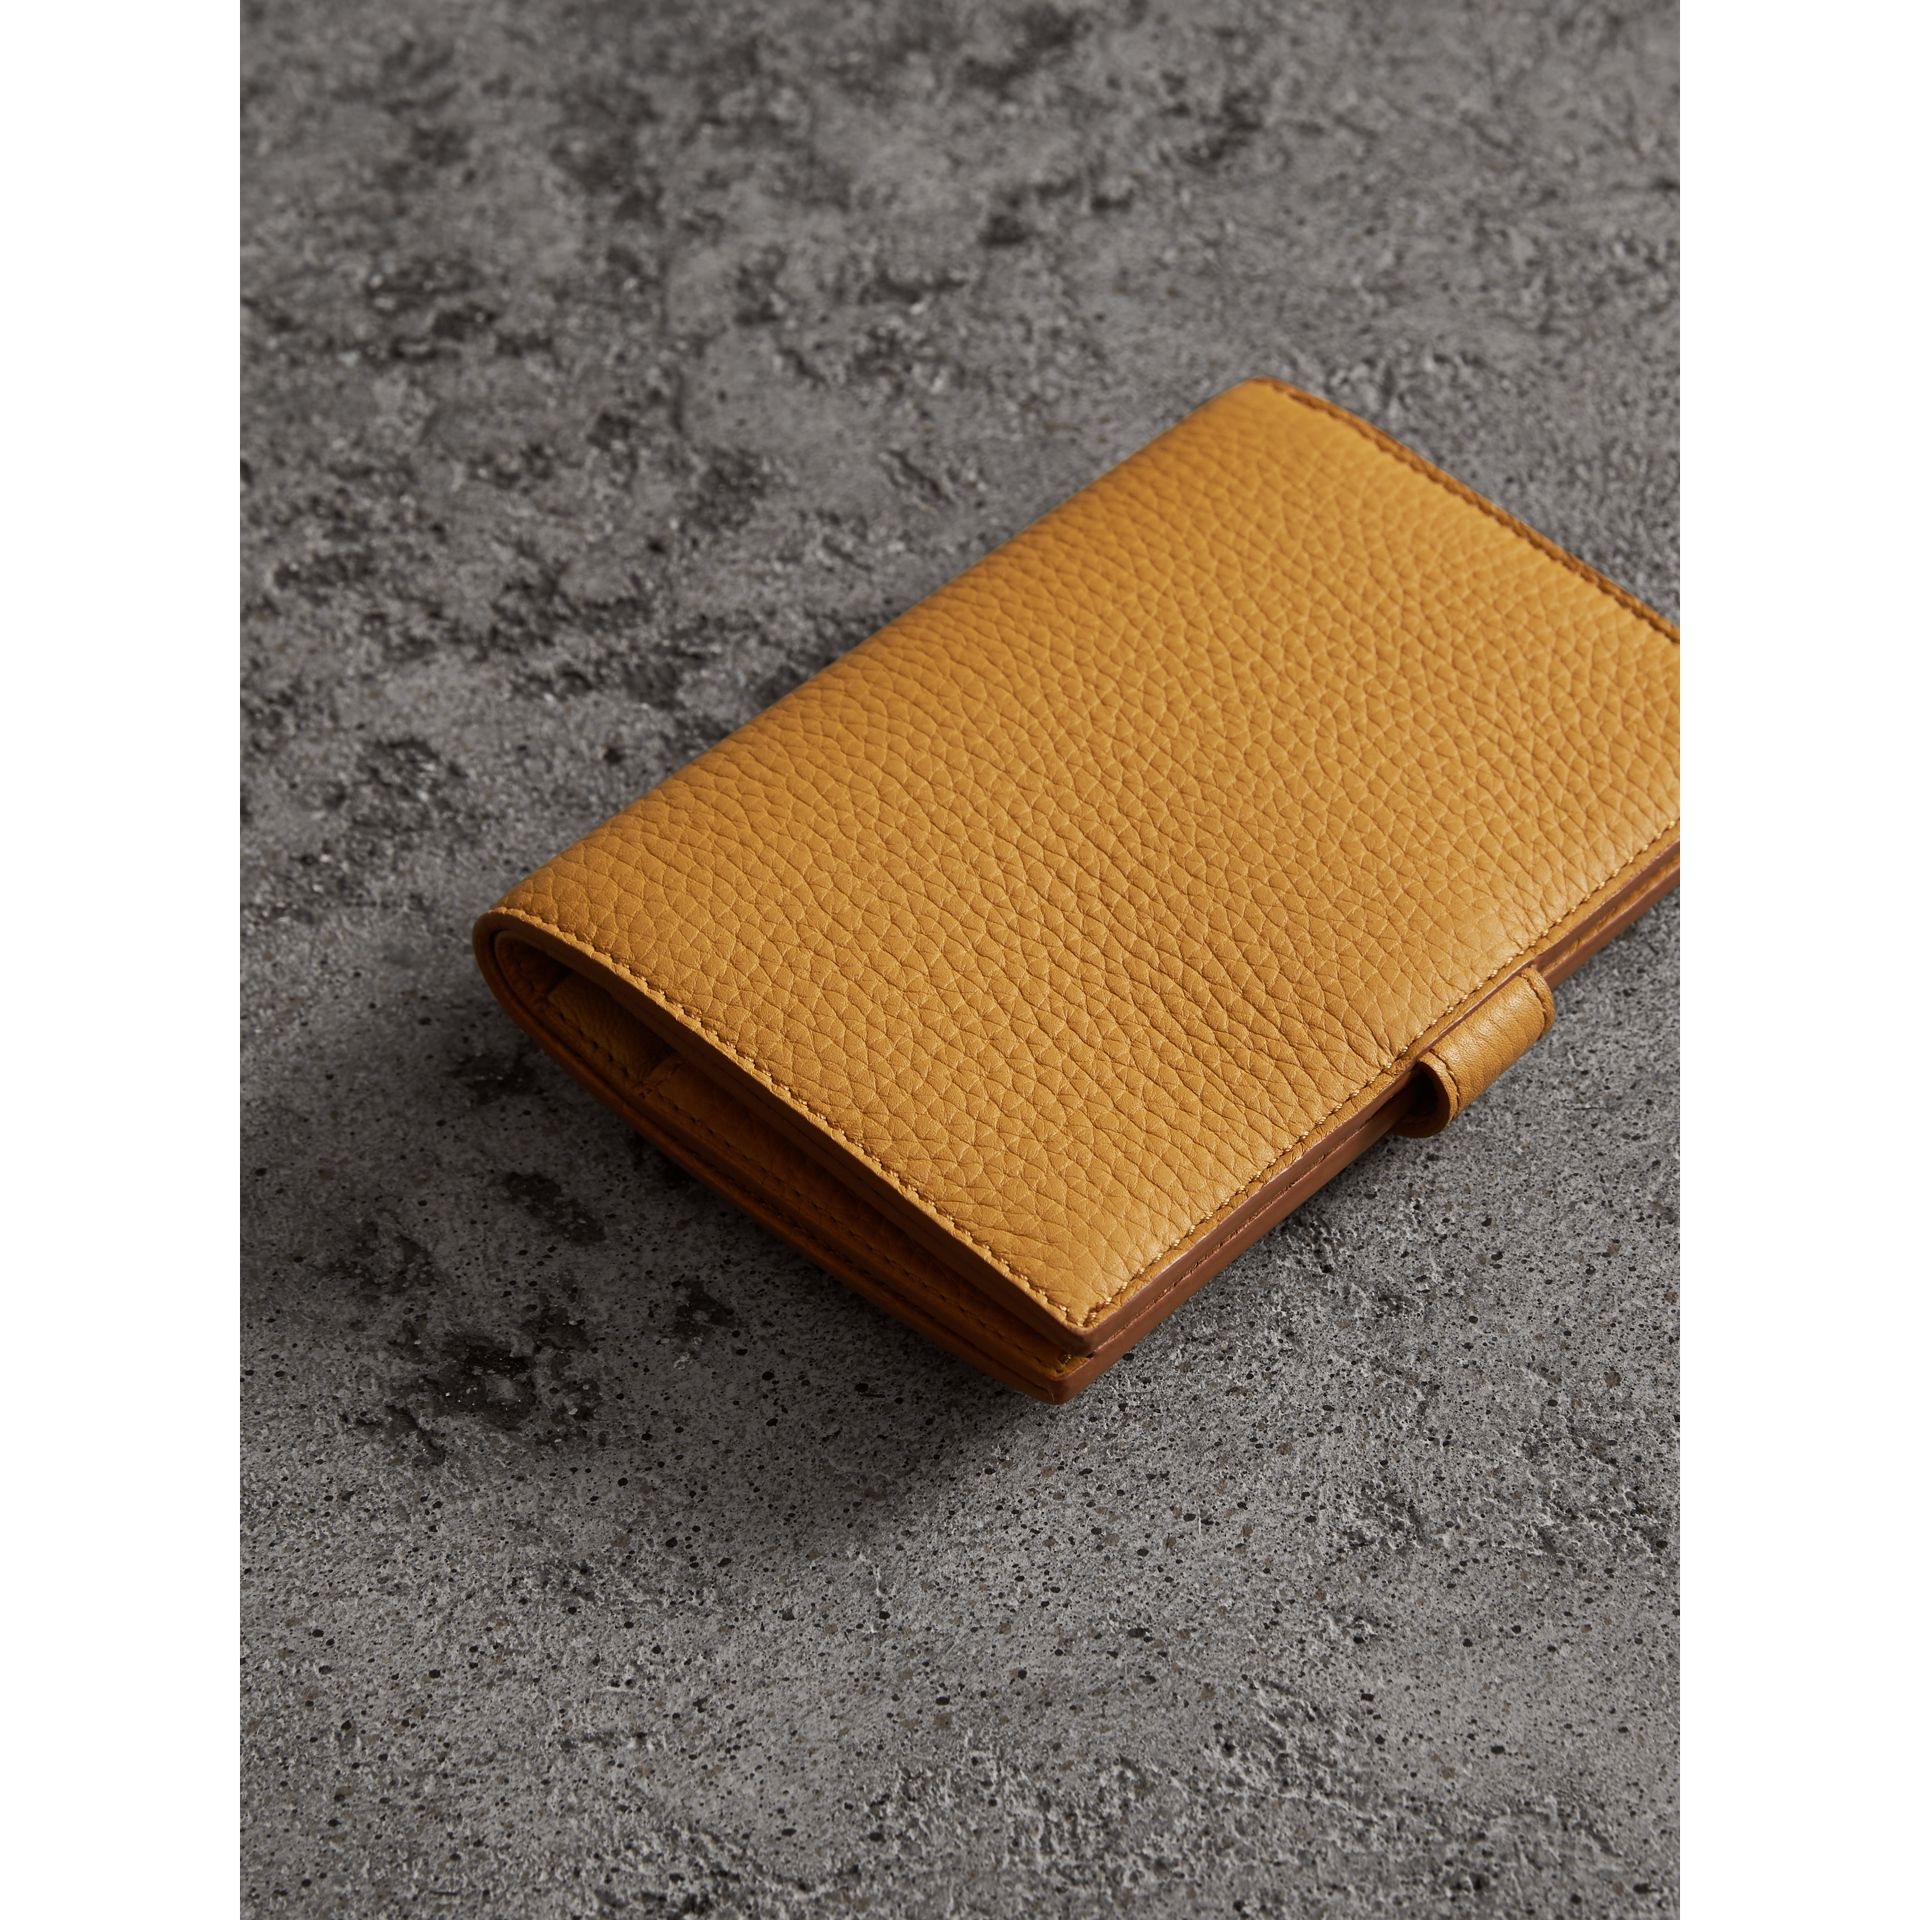 Embossed Grainy Leather Folding Wallet in Ochre Yellow - Women | Burberry - gallery image 2